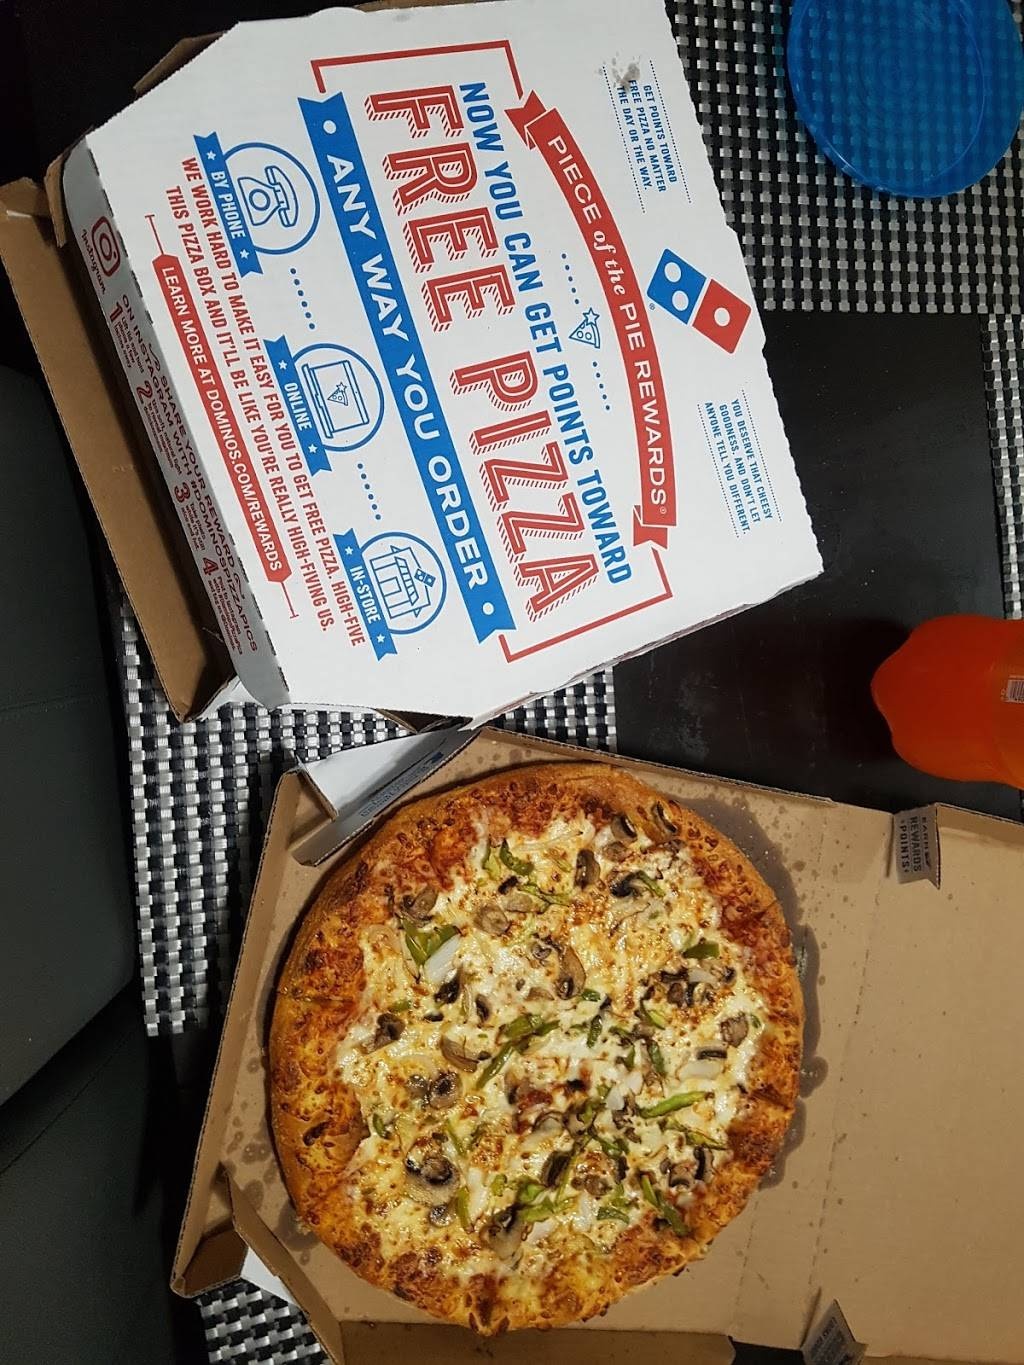 Dominos Pizza | meal delivery | 284 Valley Blvd, Wood-Ridge, NJ 07075, USA | 2018048181 OR +1 201-804-8181